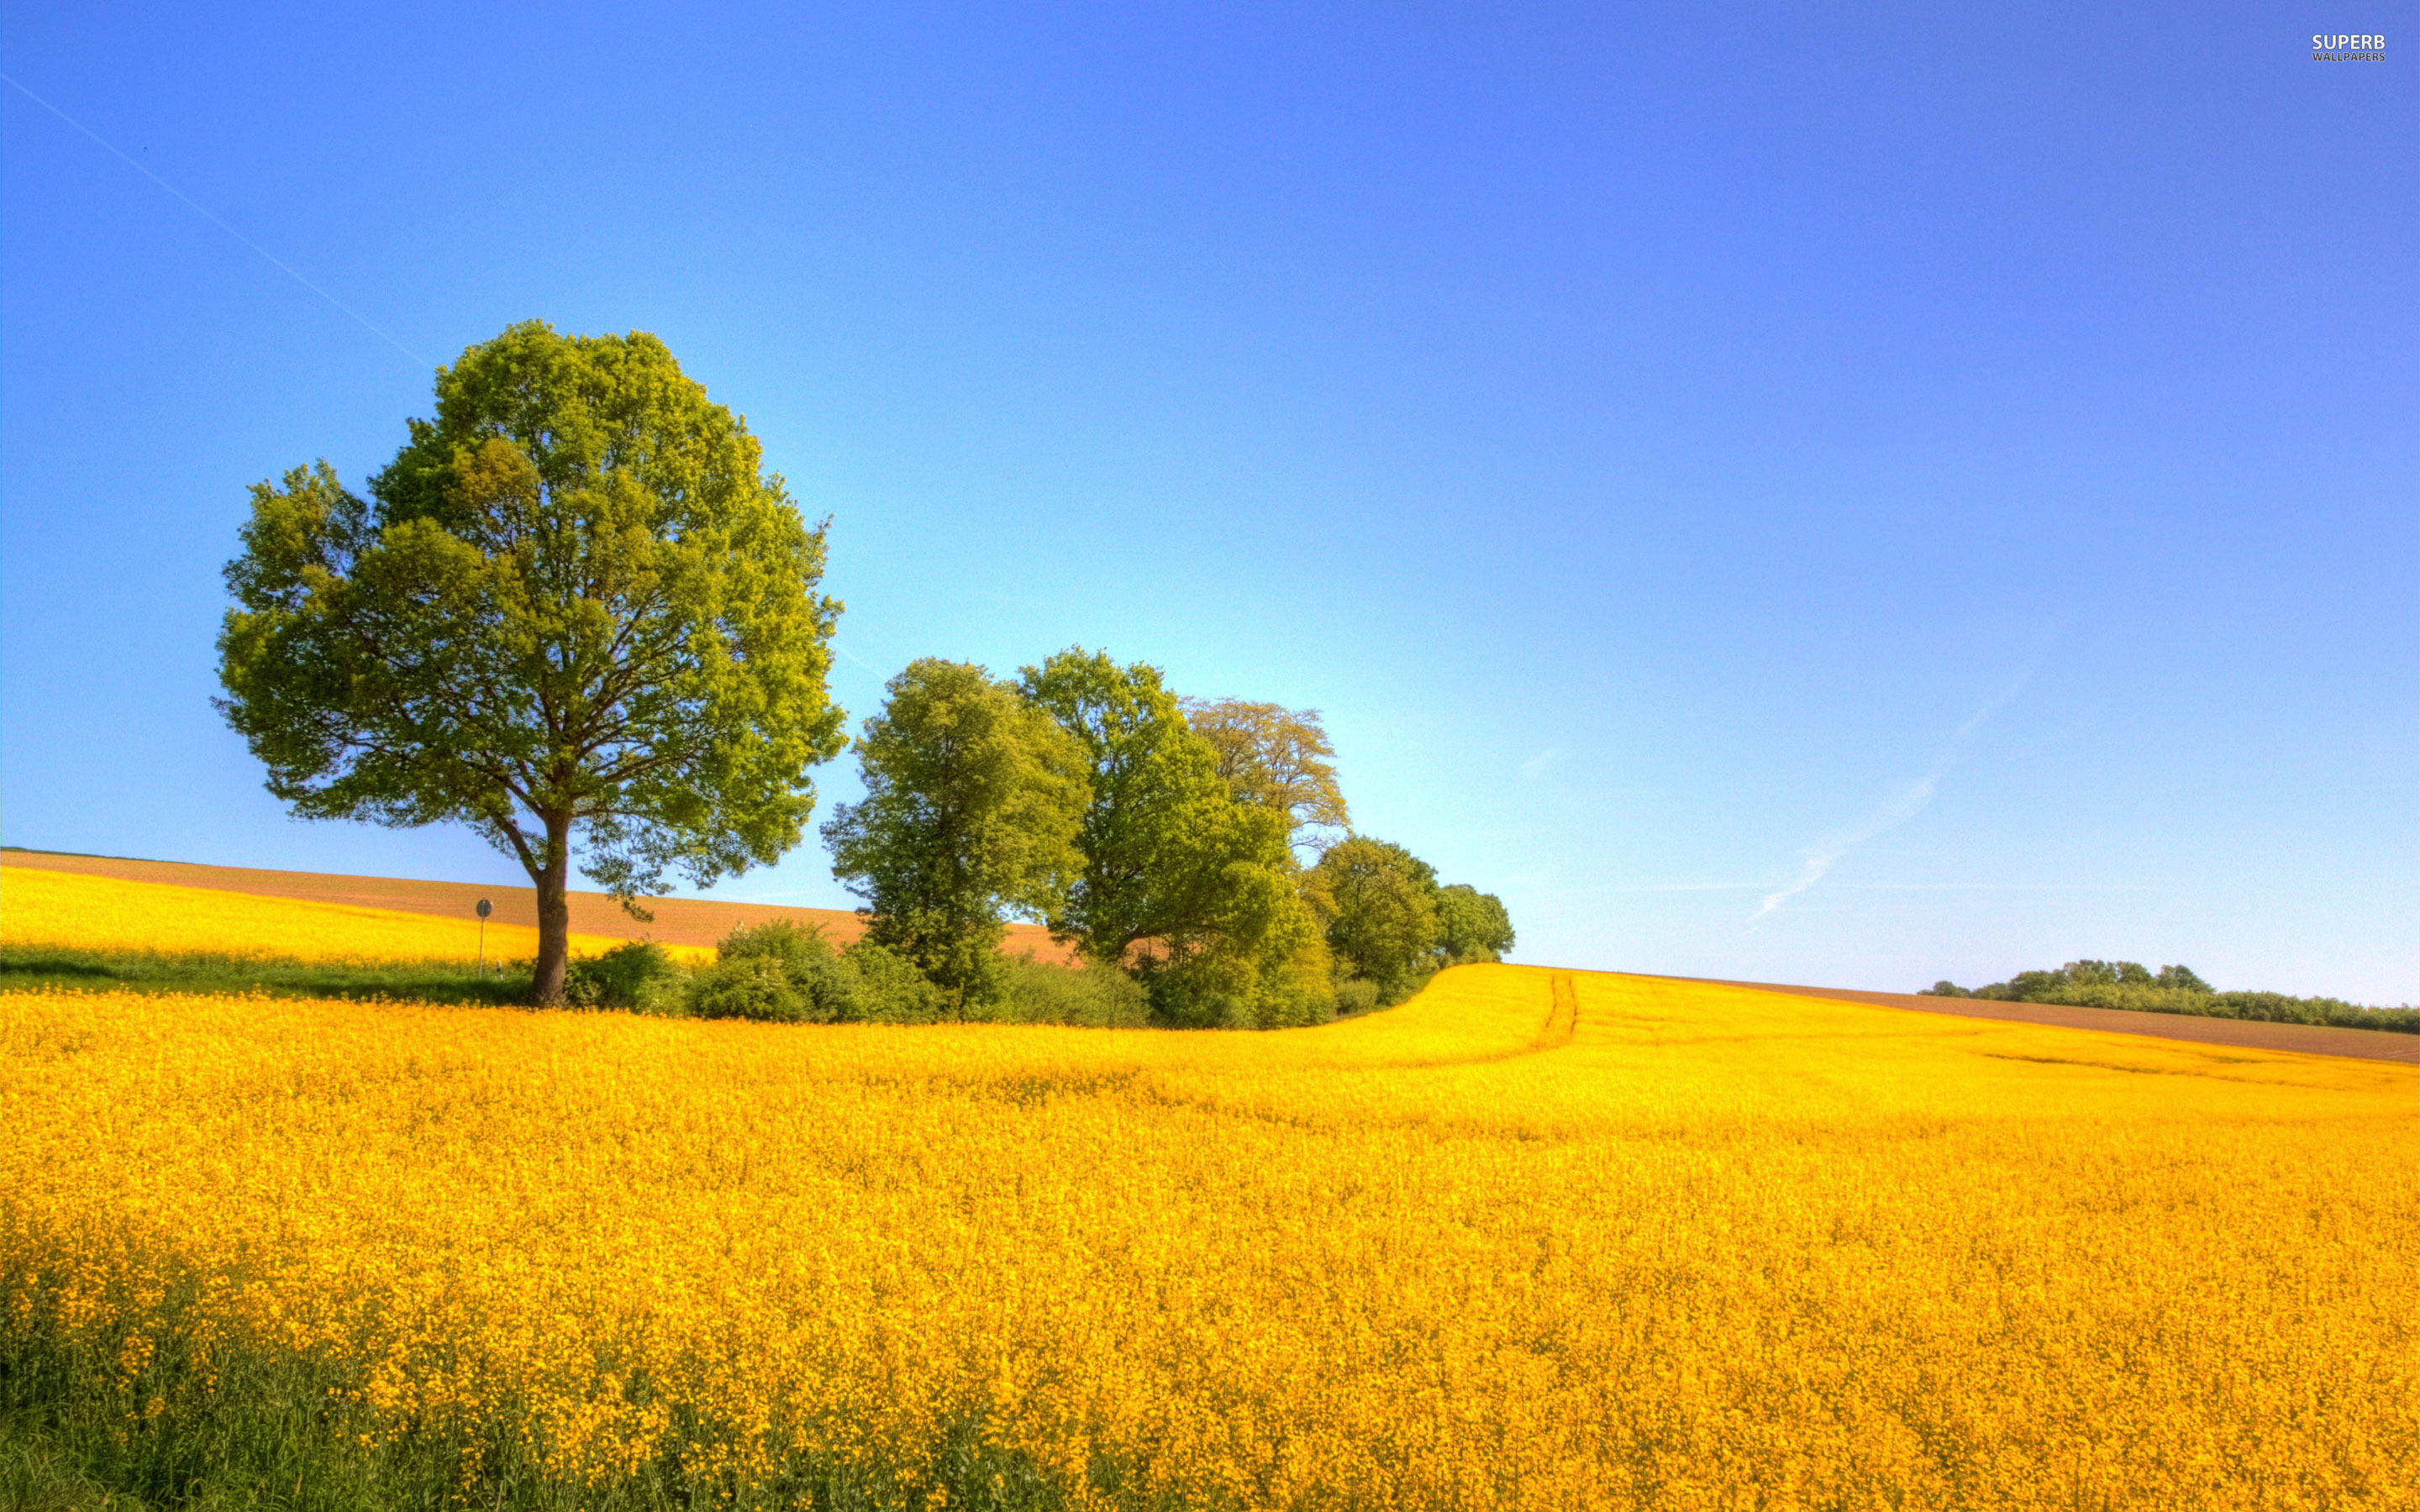 Yellow rapeseed field wallpaper 2880x1800